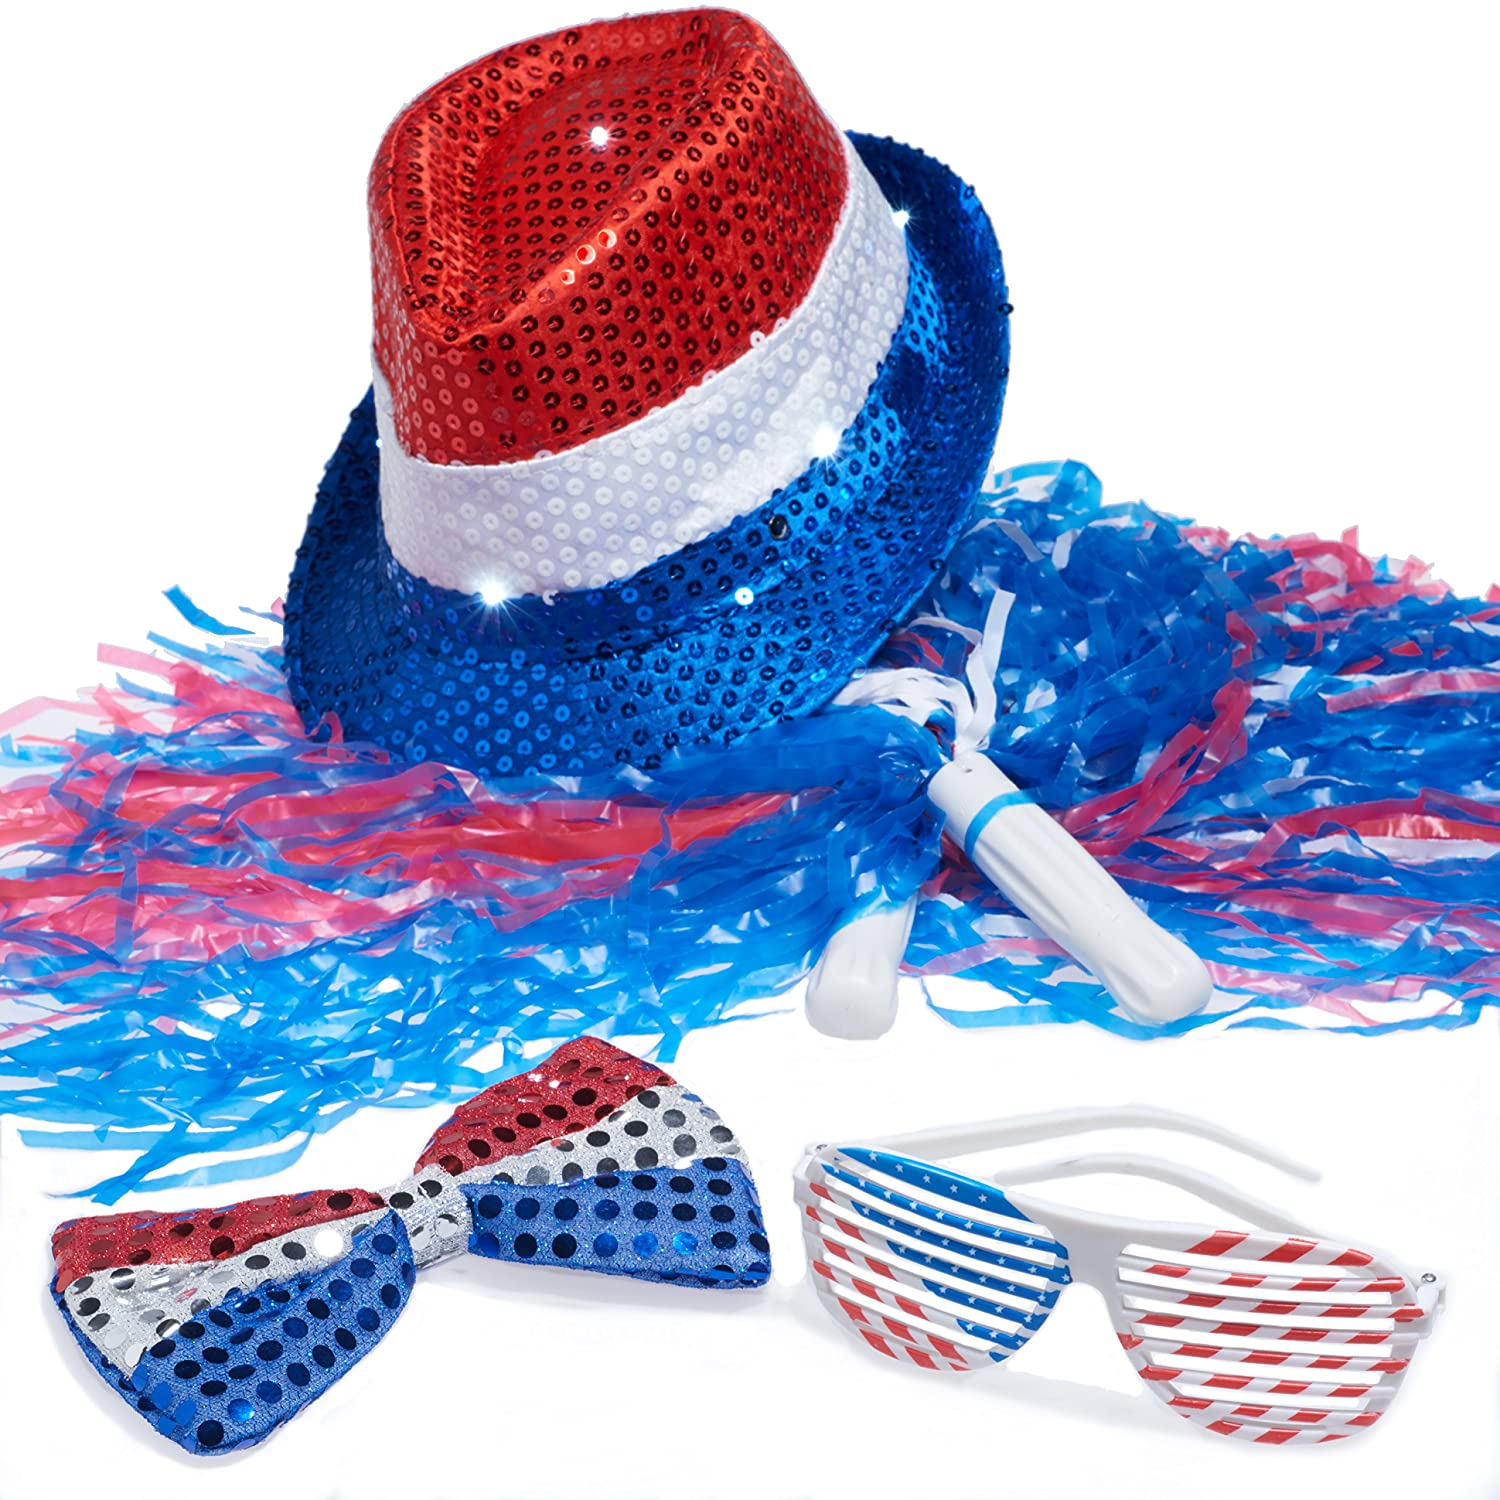 4th of July Set, Patriotic Sequin Blinking Hat, 4th of July Shutter Shade Glasses, Patriotic Bow Tie, Patriotic Color Pom Poms 4th july america flag style stripe pettiskirt white ruffle tank top 2pc set 1 8year mamg1143